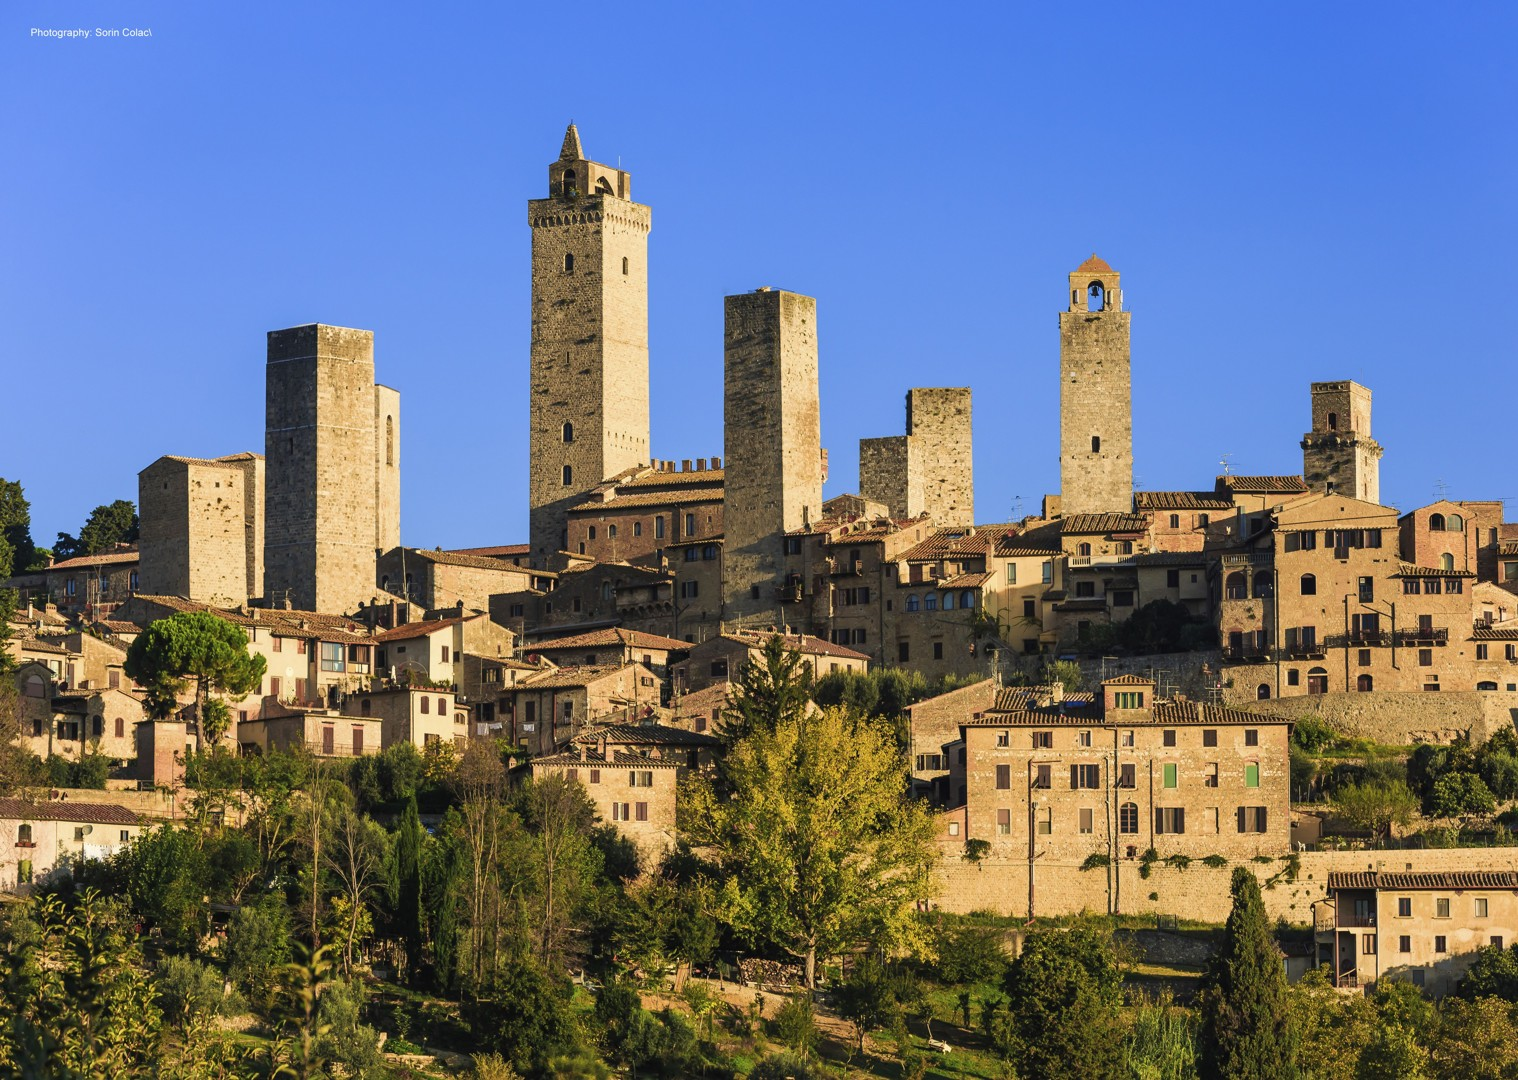 leisure-cycling-holiday-tuscany-sangimignano.jpg - Italy - A Taste of Tuscany - Guided Leisure Cycling Holiday - Leisure Cycling